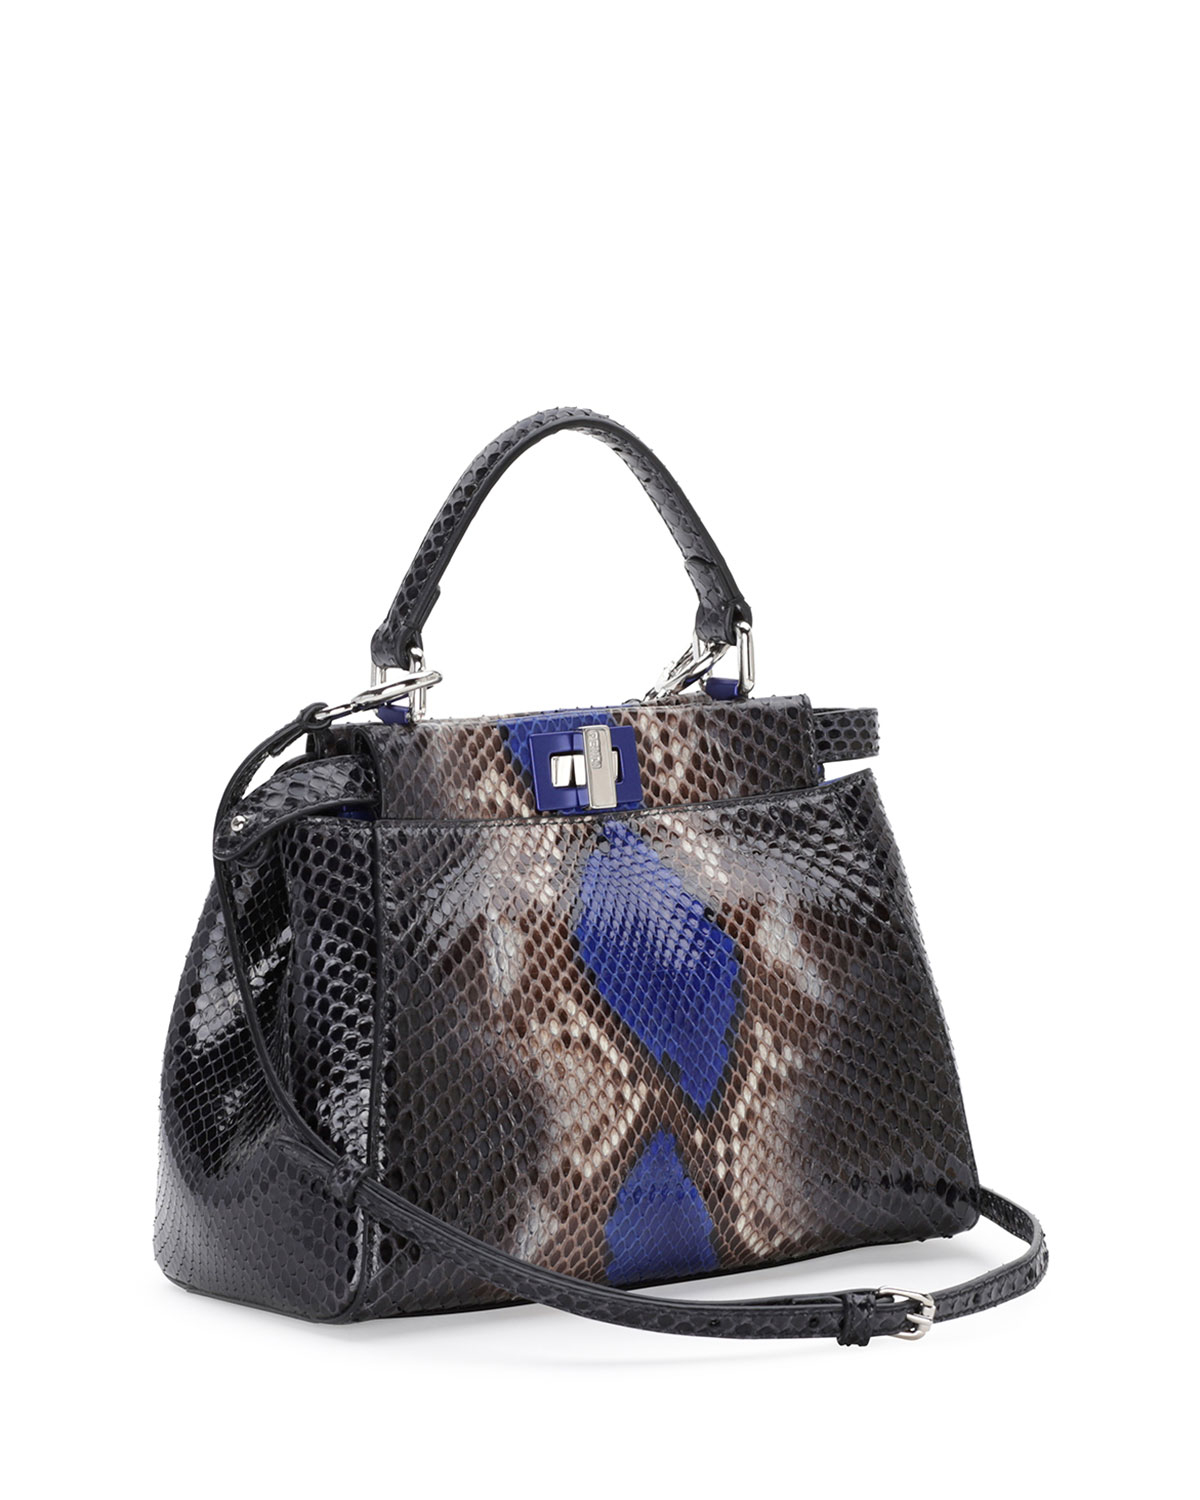 1e32a547 Fendi Blue Peekaboo Mini Python Satchel Bag